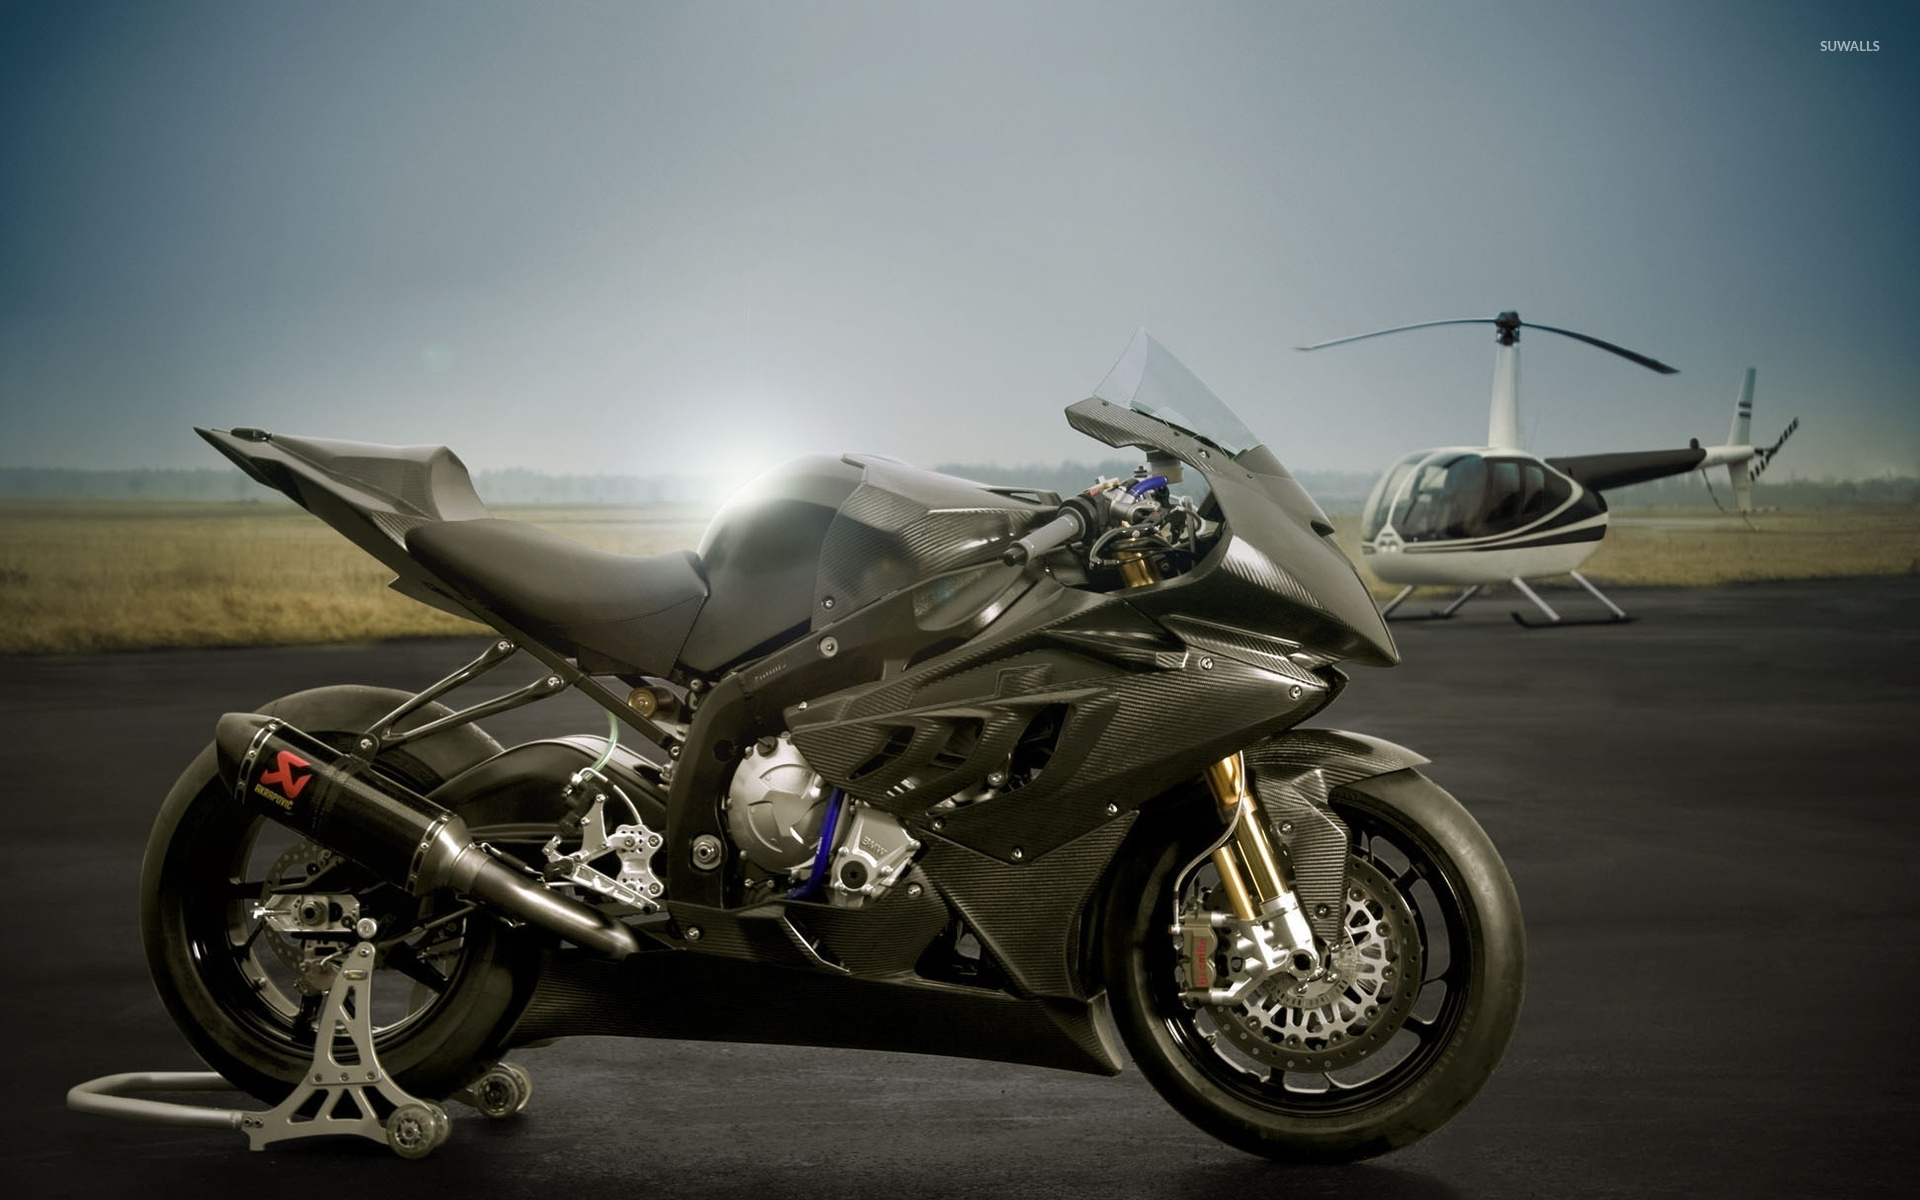 S1000rr Bmw Wallpaper Motorcycle Wallpapers 32596